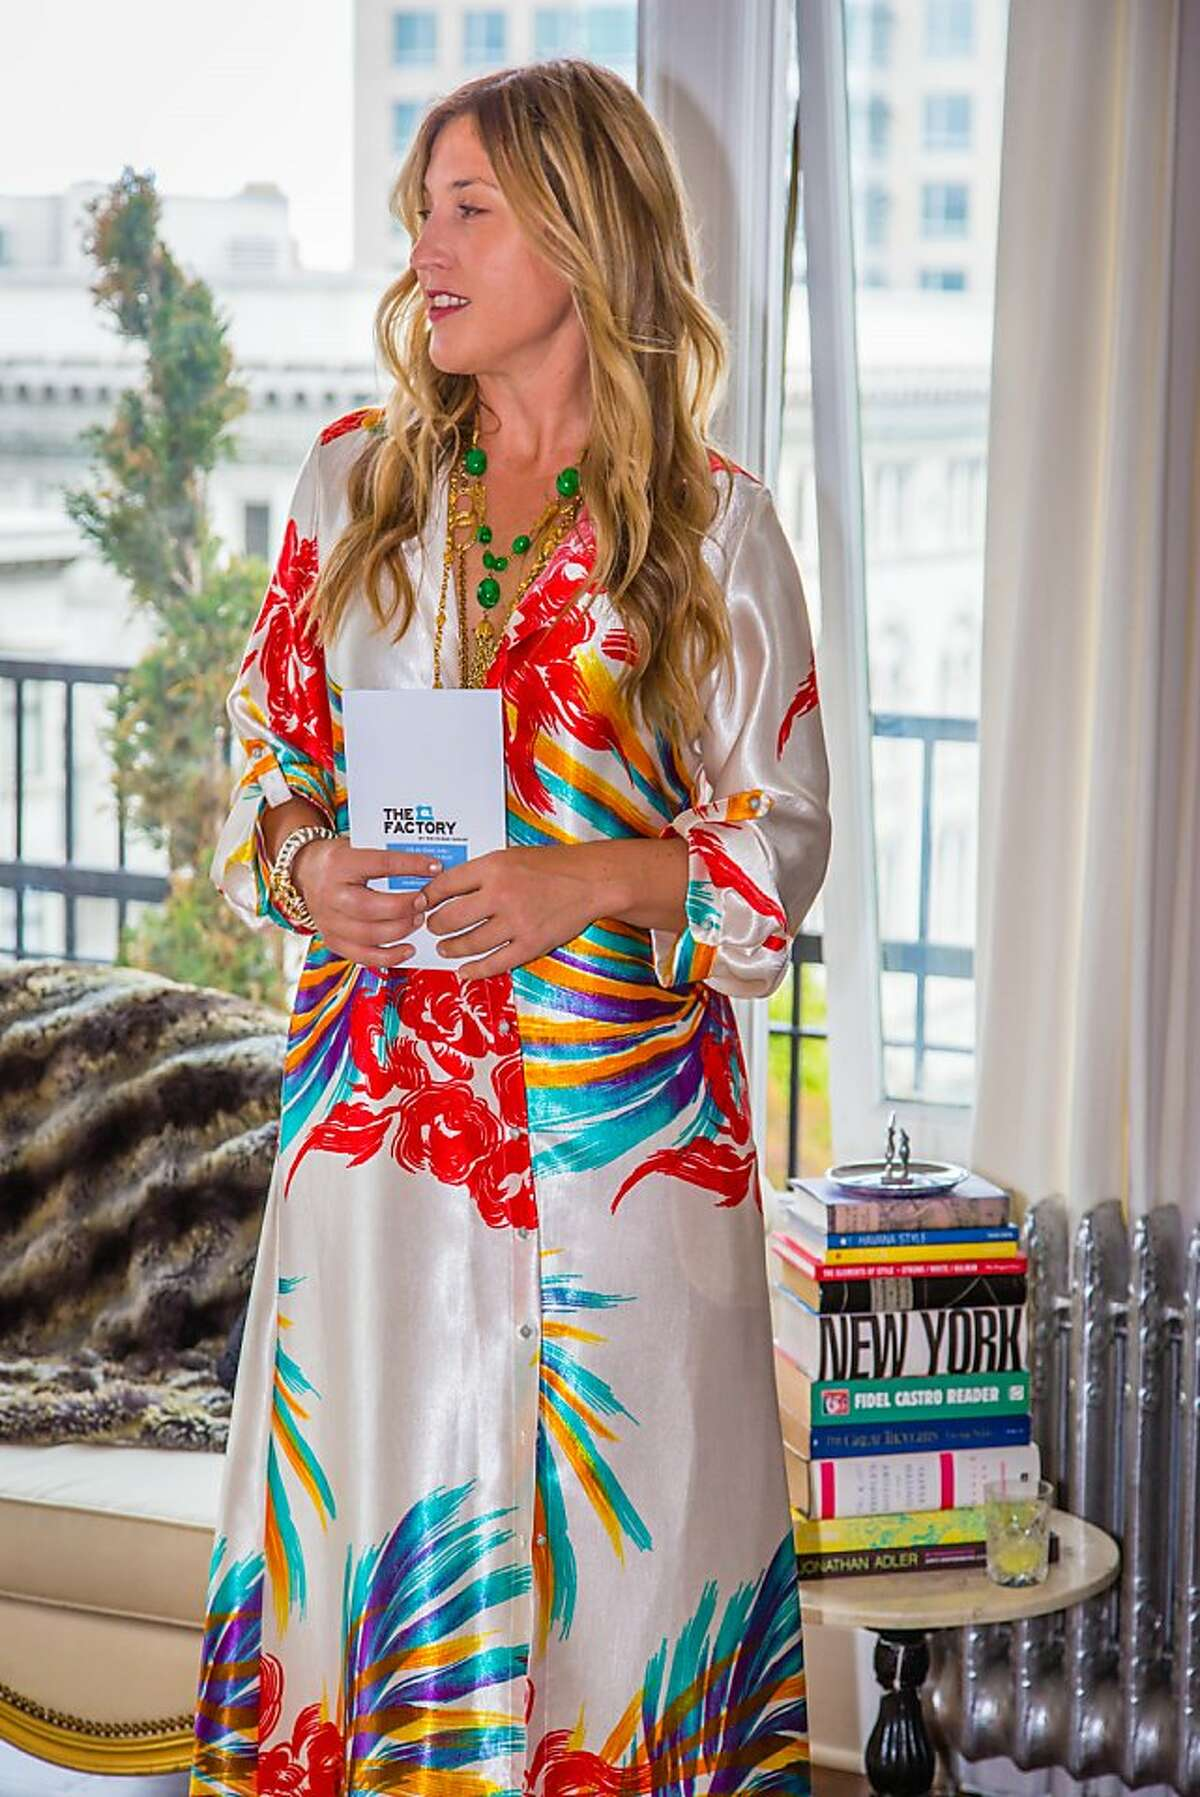 The Factory debuted its new eveningwear line with Britex with an intimate dinner at founder Jennifer Evans' (pictured) Beaux Arts penthouse overlooking downtown San Francisco.